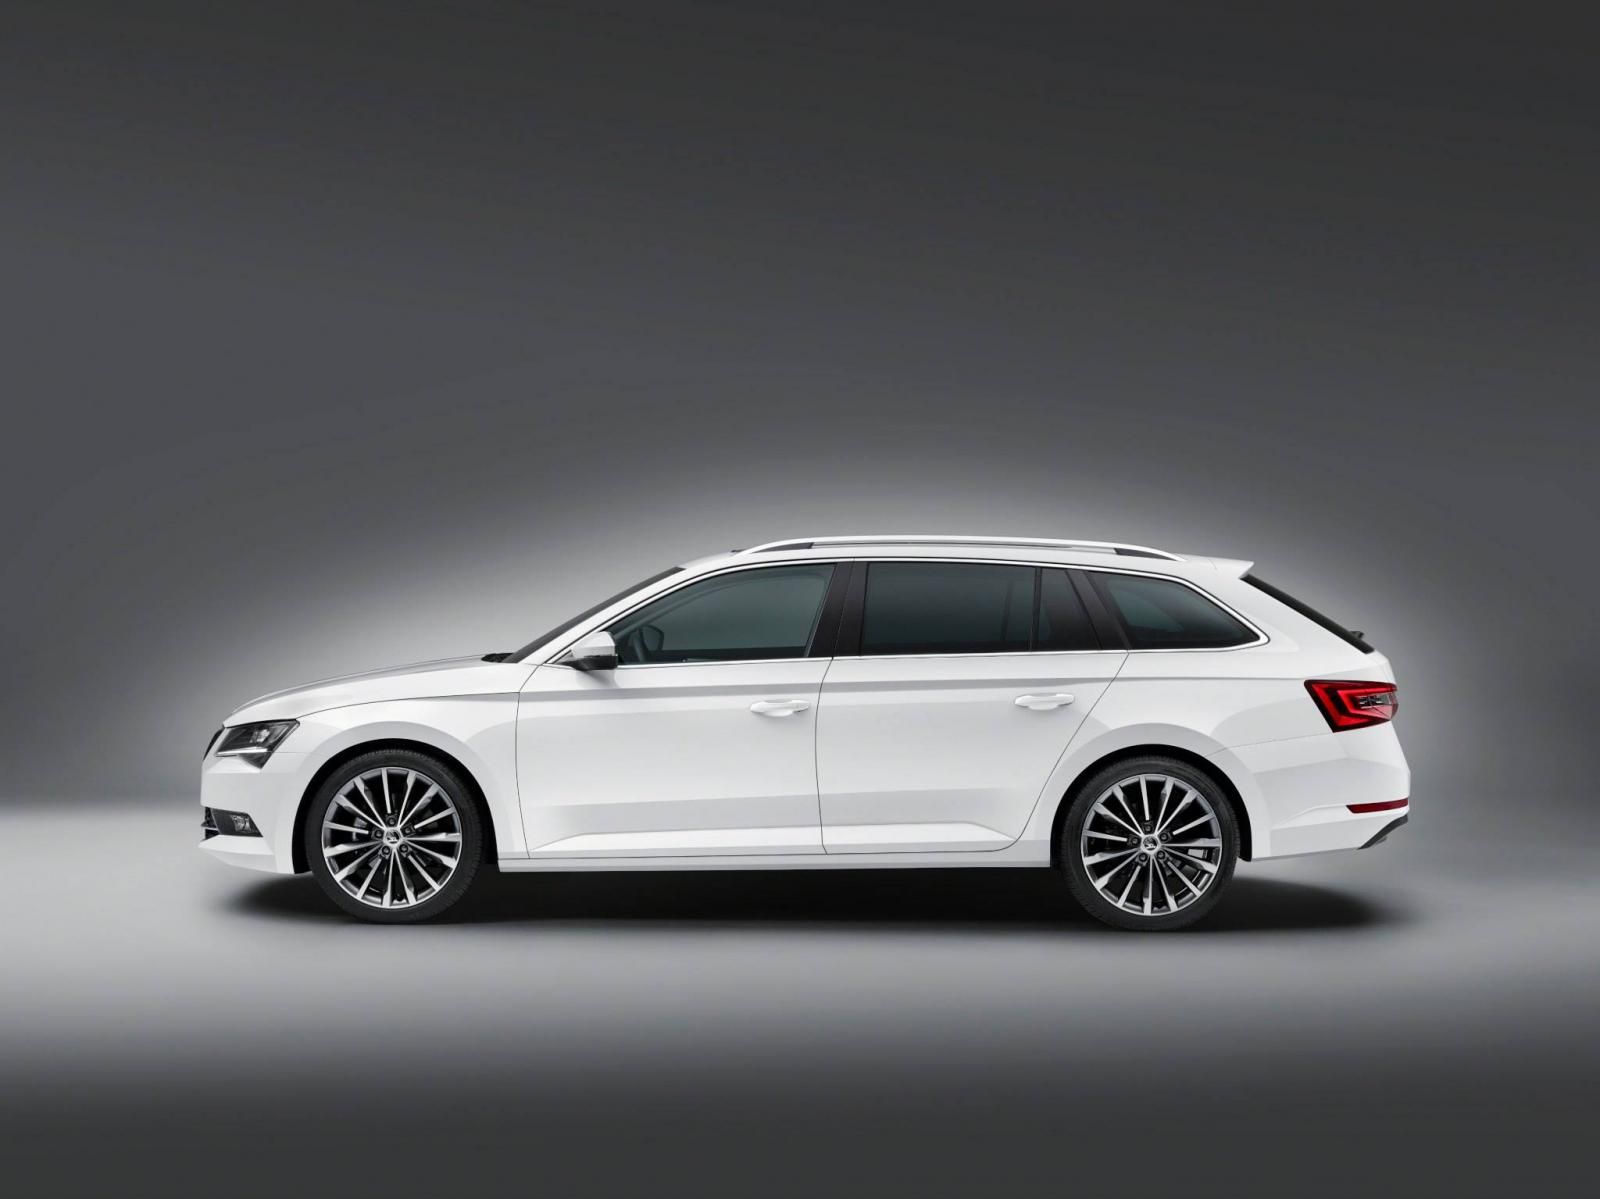 2015 Skoda Superb Combi Officially Revealed with 660 Liters of Trunk